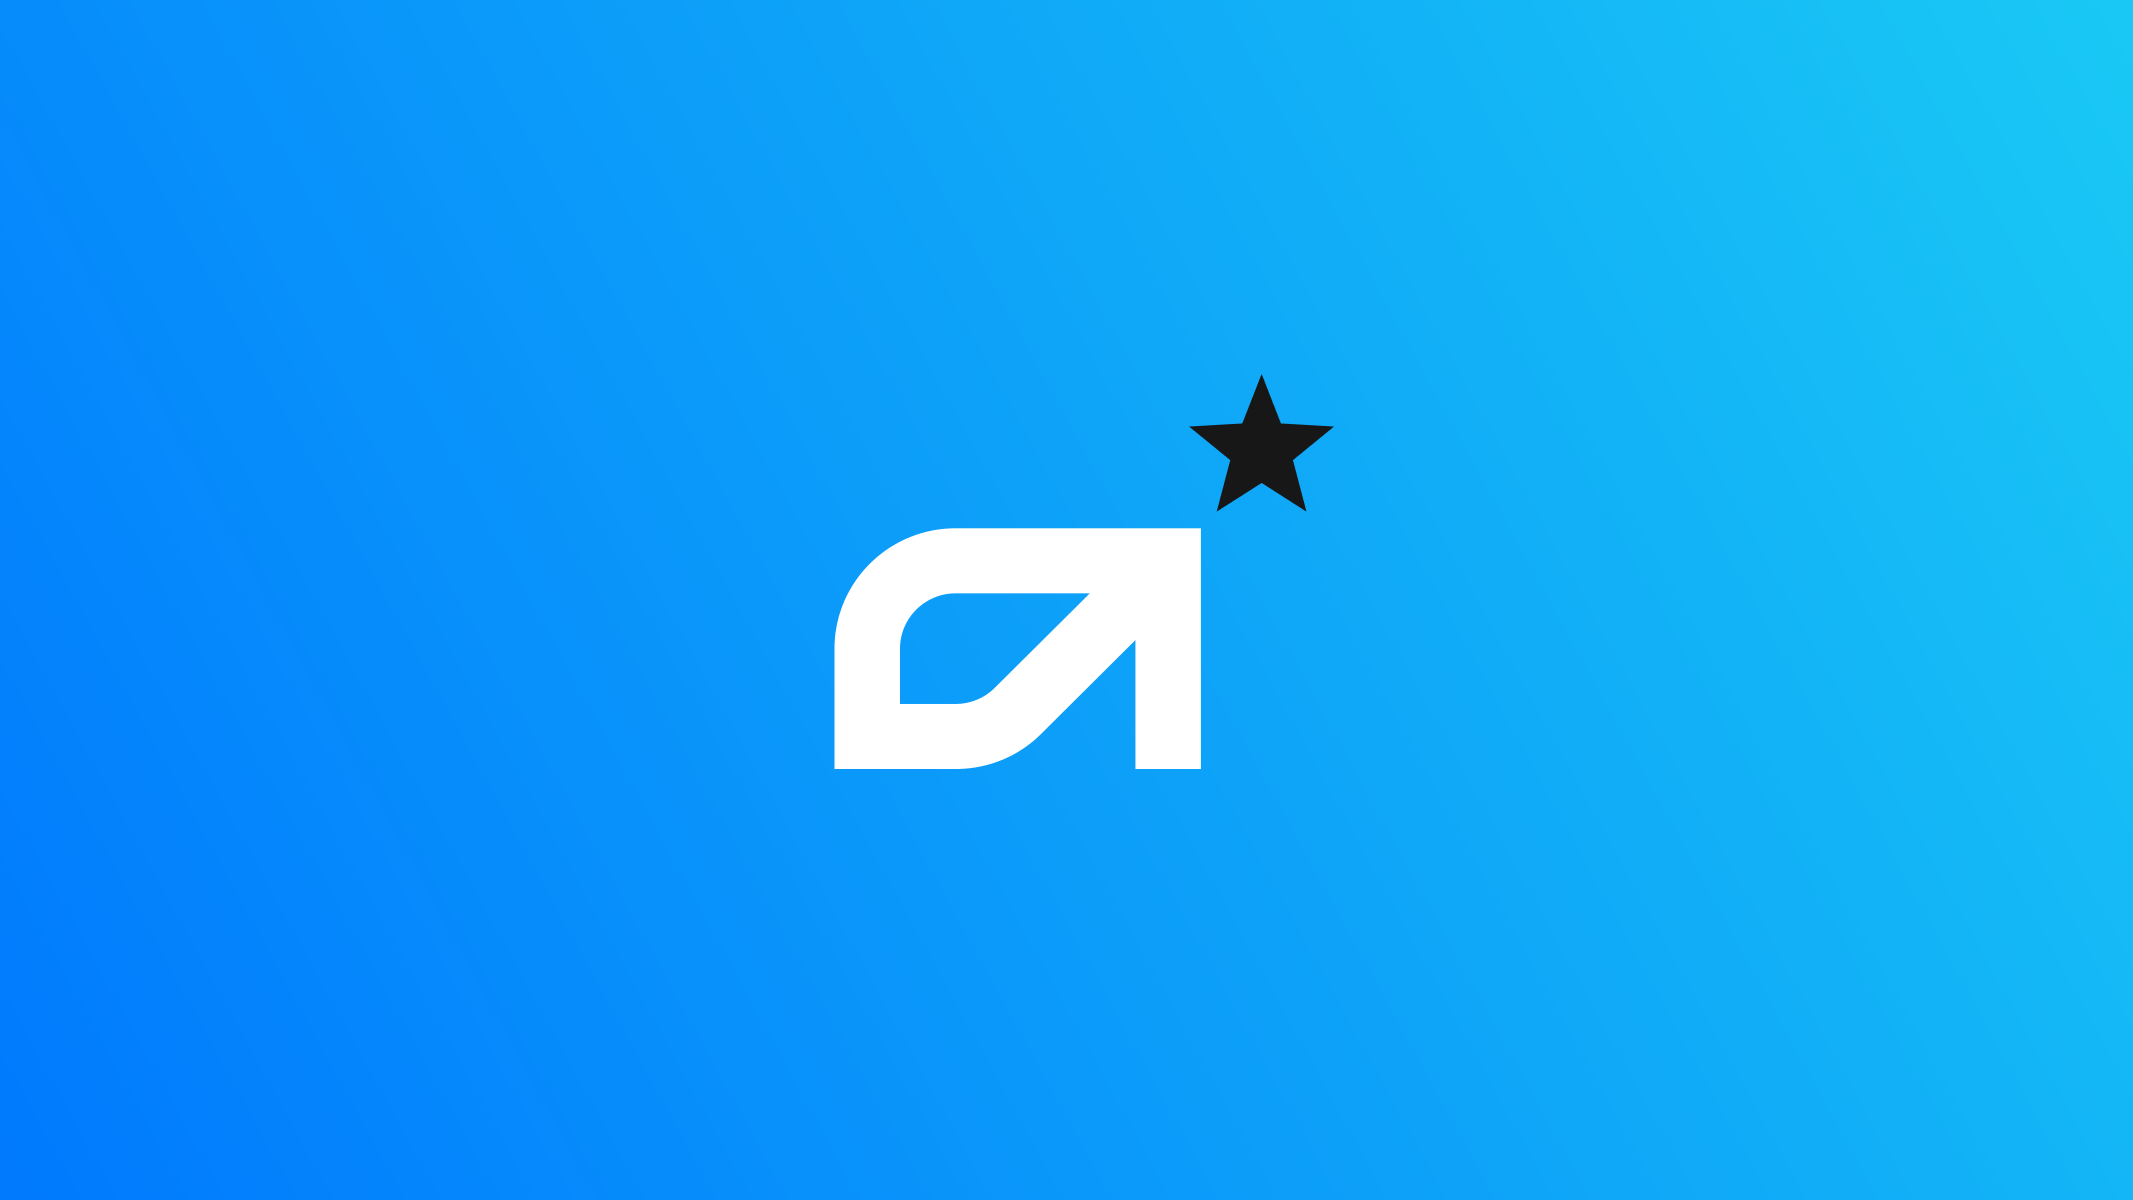 2133x1200 Astro Gaming Wallpapers